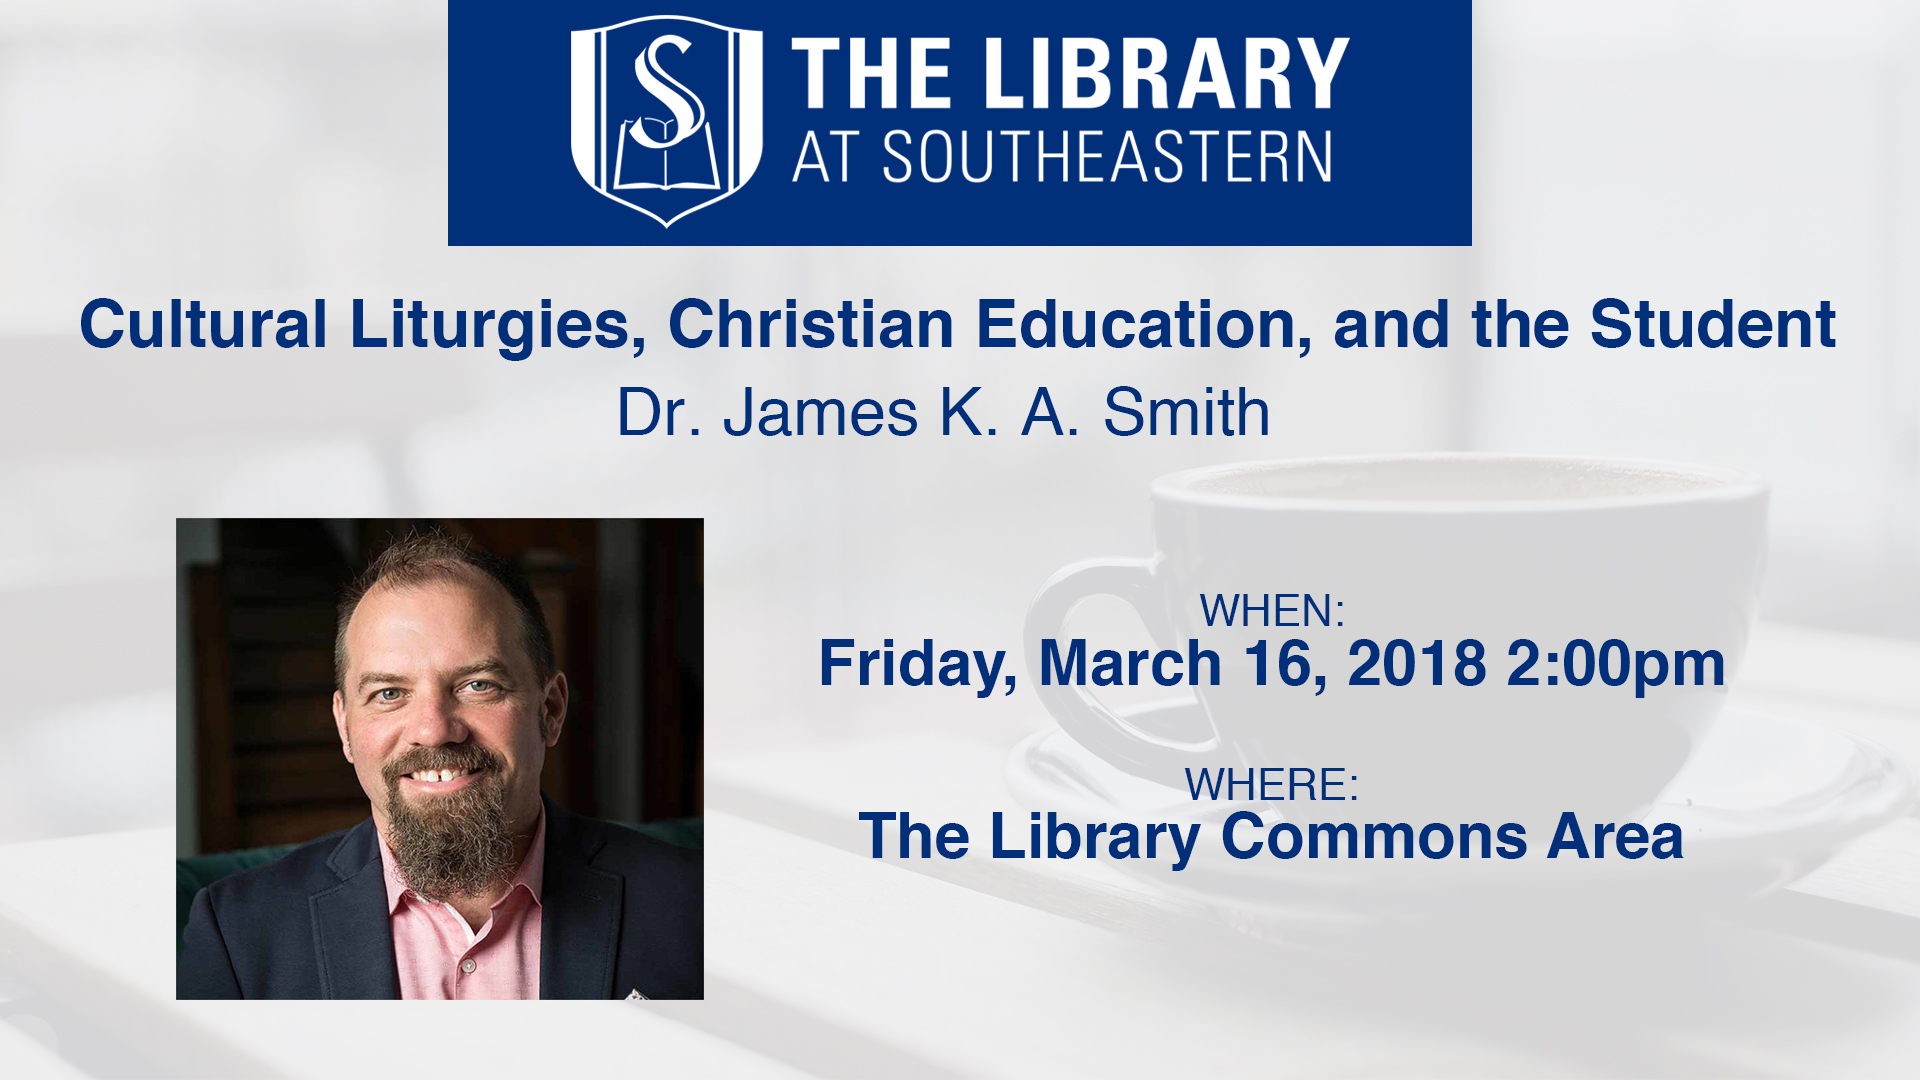 Library Talk: James K. A. Smith—Cultural Liturgies, Christian Education, and the Student